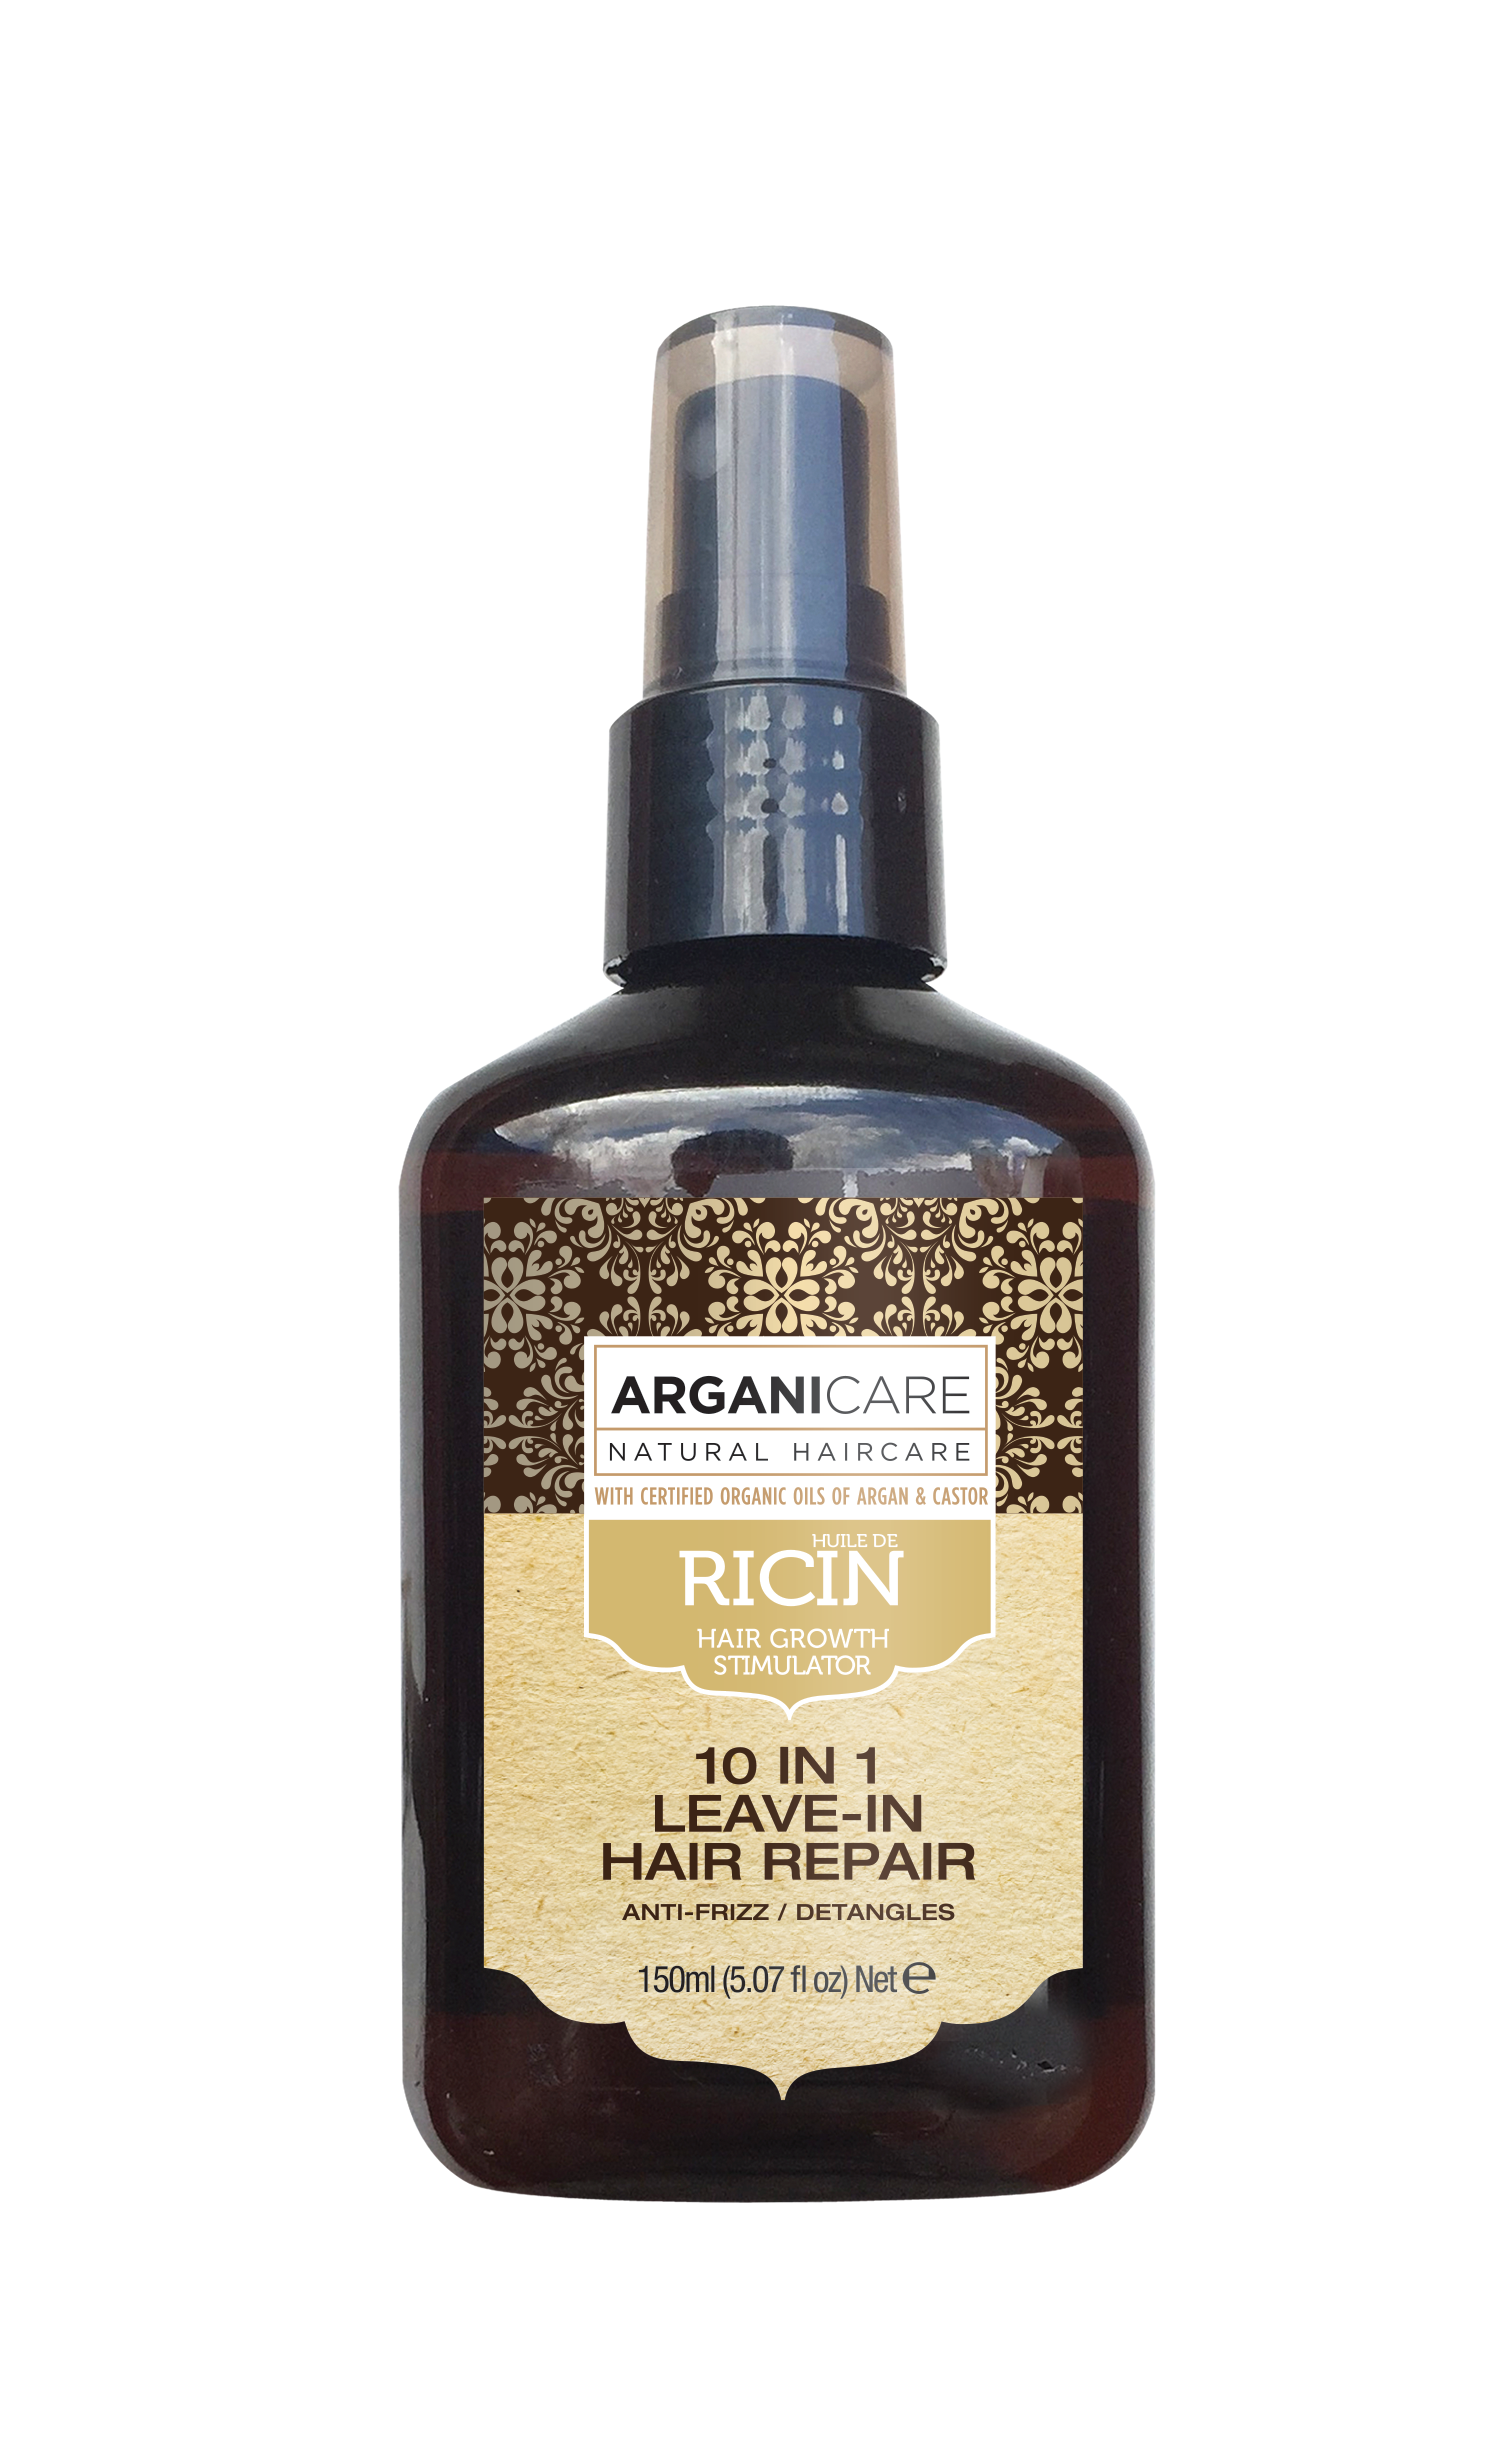 Arganicare Leave-in Hair Repair Spray with Argan and Castor Oil 150ml